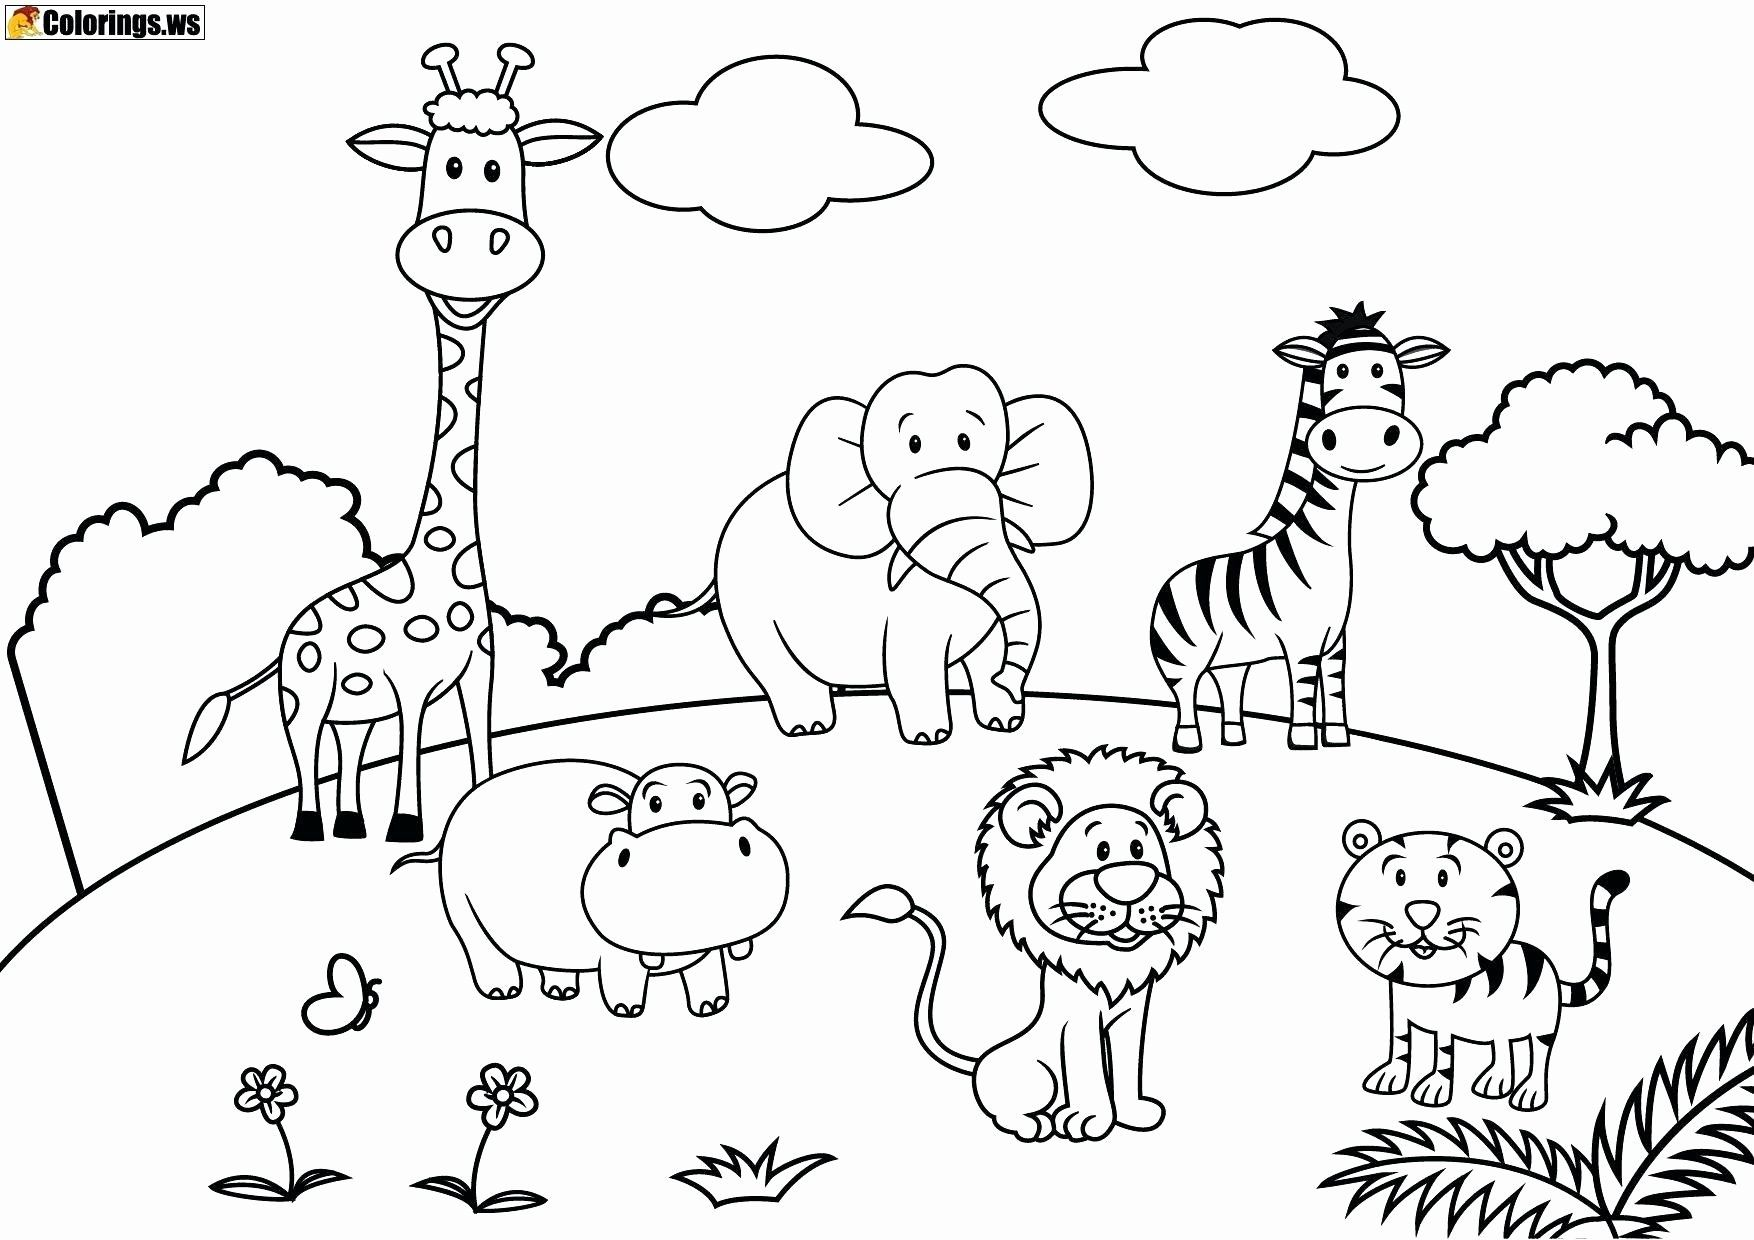 Pin By Maril Bovy On Classrooms Zoo Animal Coloring Pages Zoo Coloring Pages Animal Coloring Books